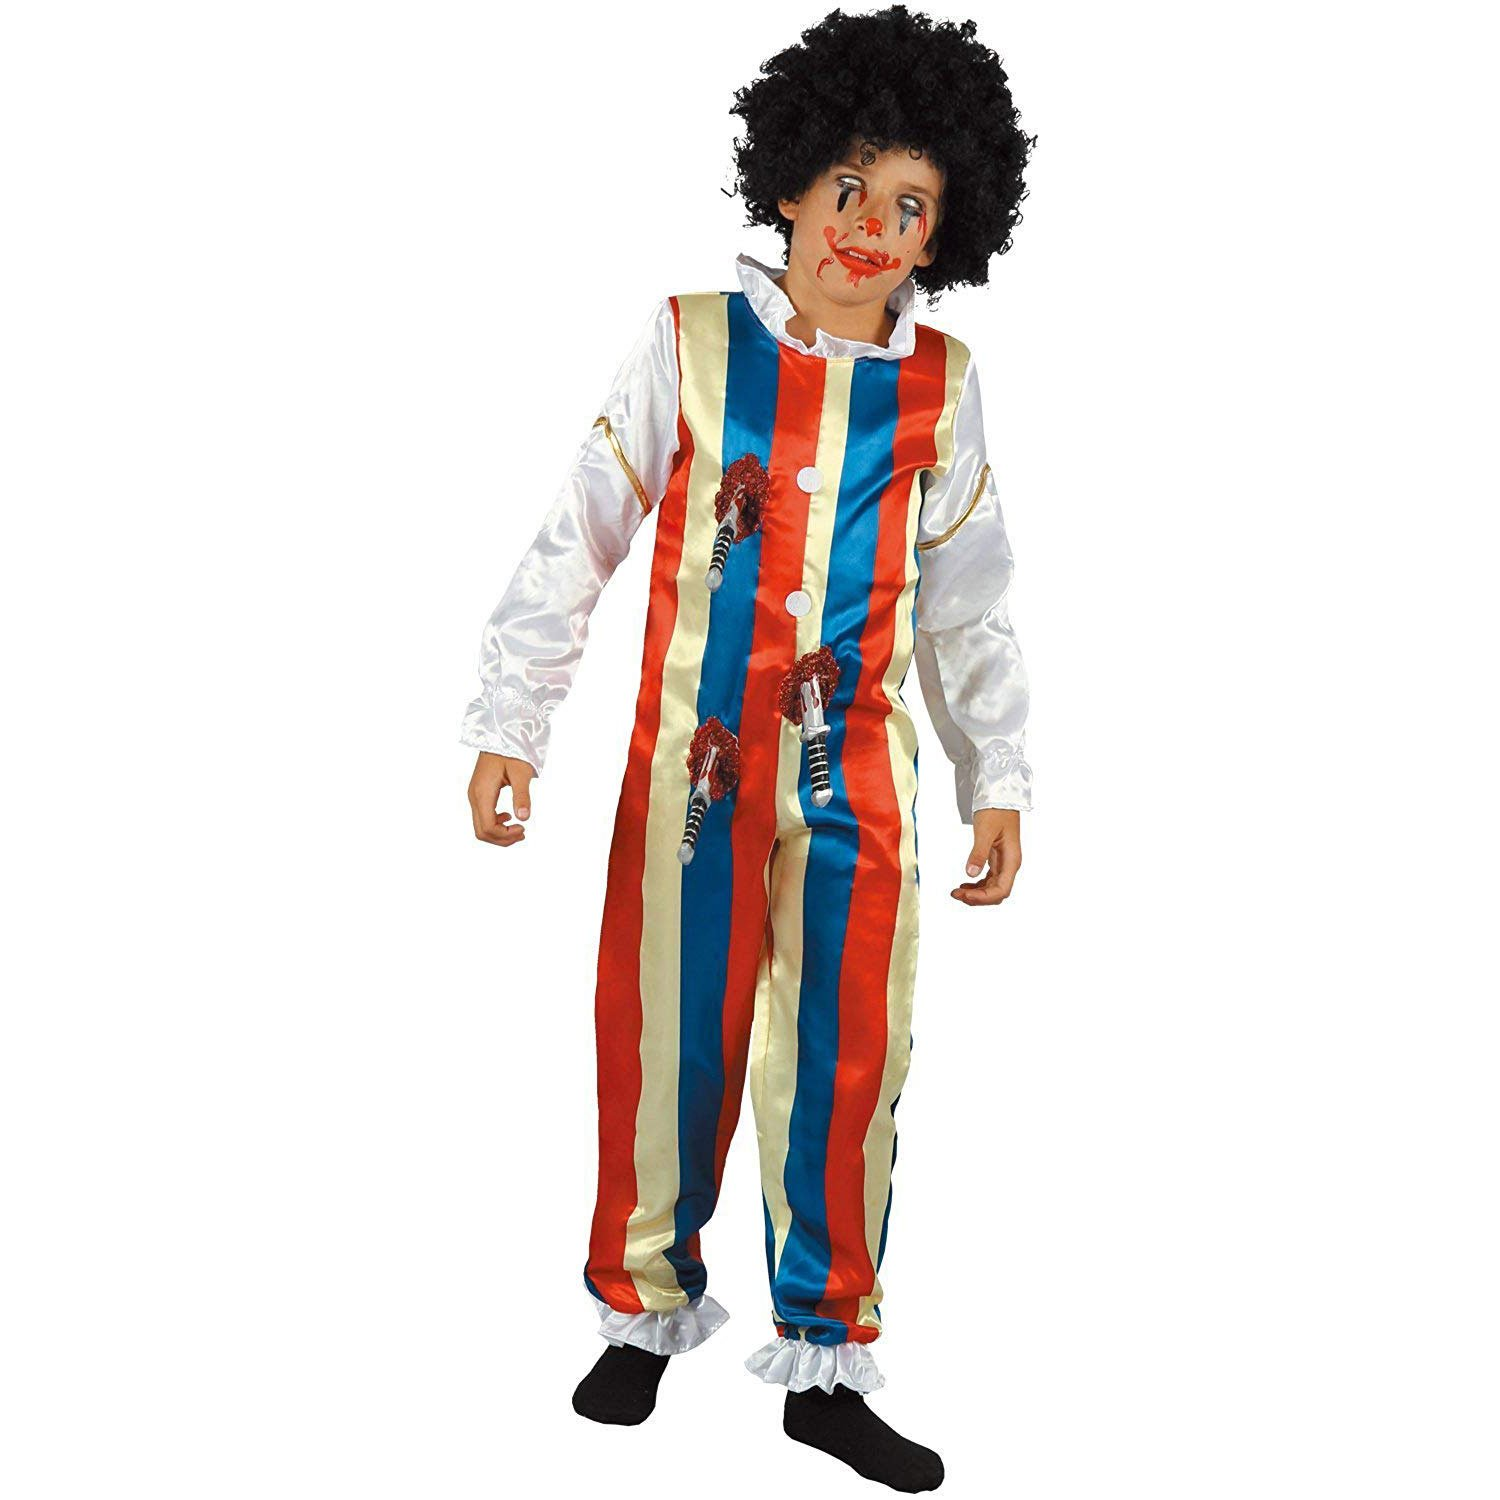 2018 Scary Zombie Clown Costume For Kids For Kids You Look Ugly Today